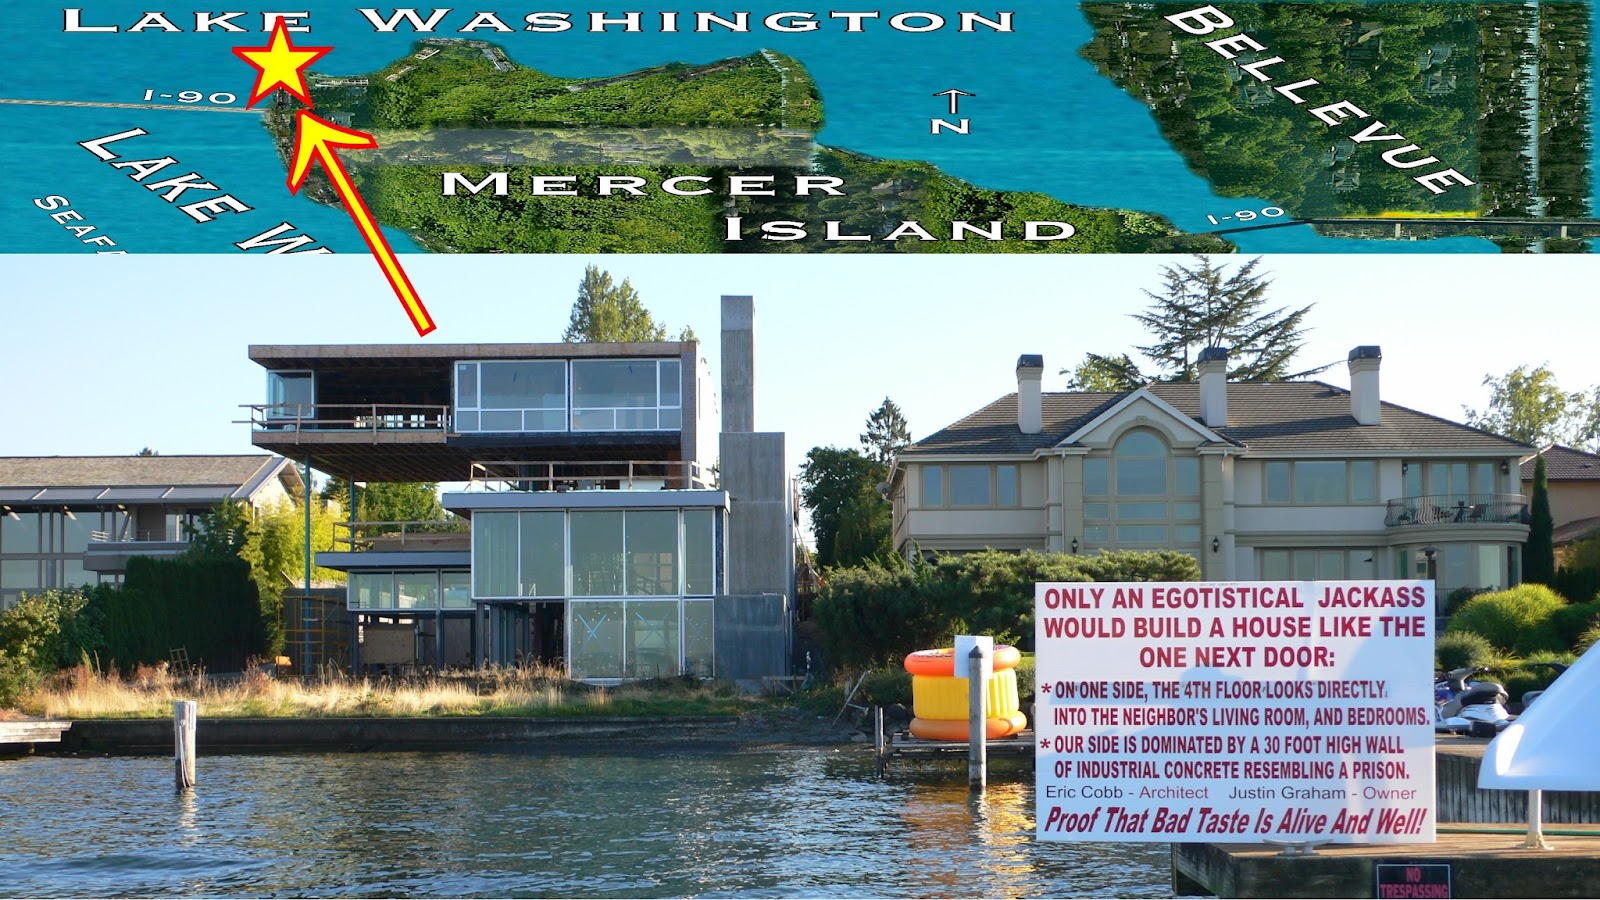 Seattle Mansions Famous Sign  Mercer Island North End